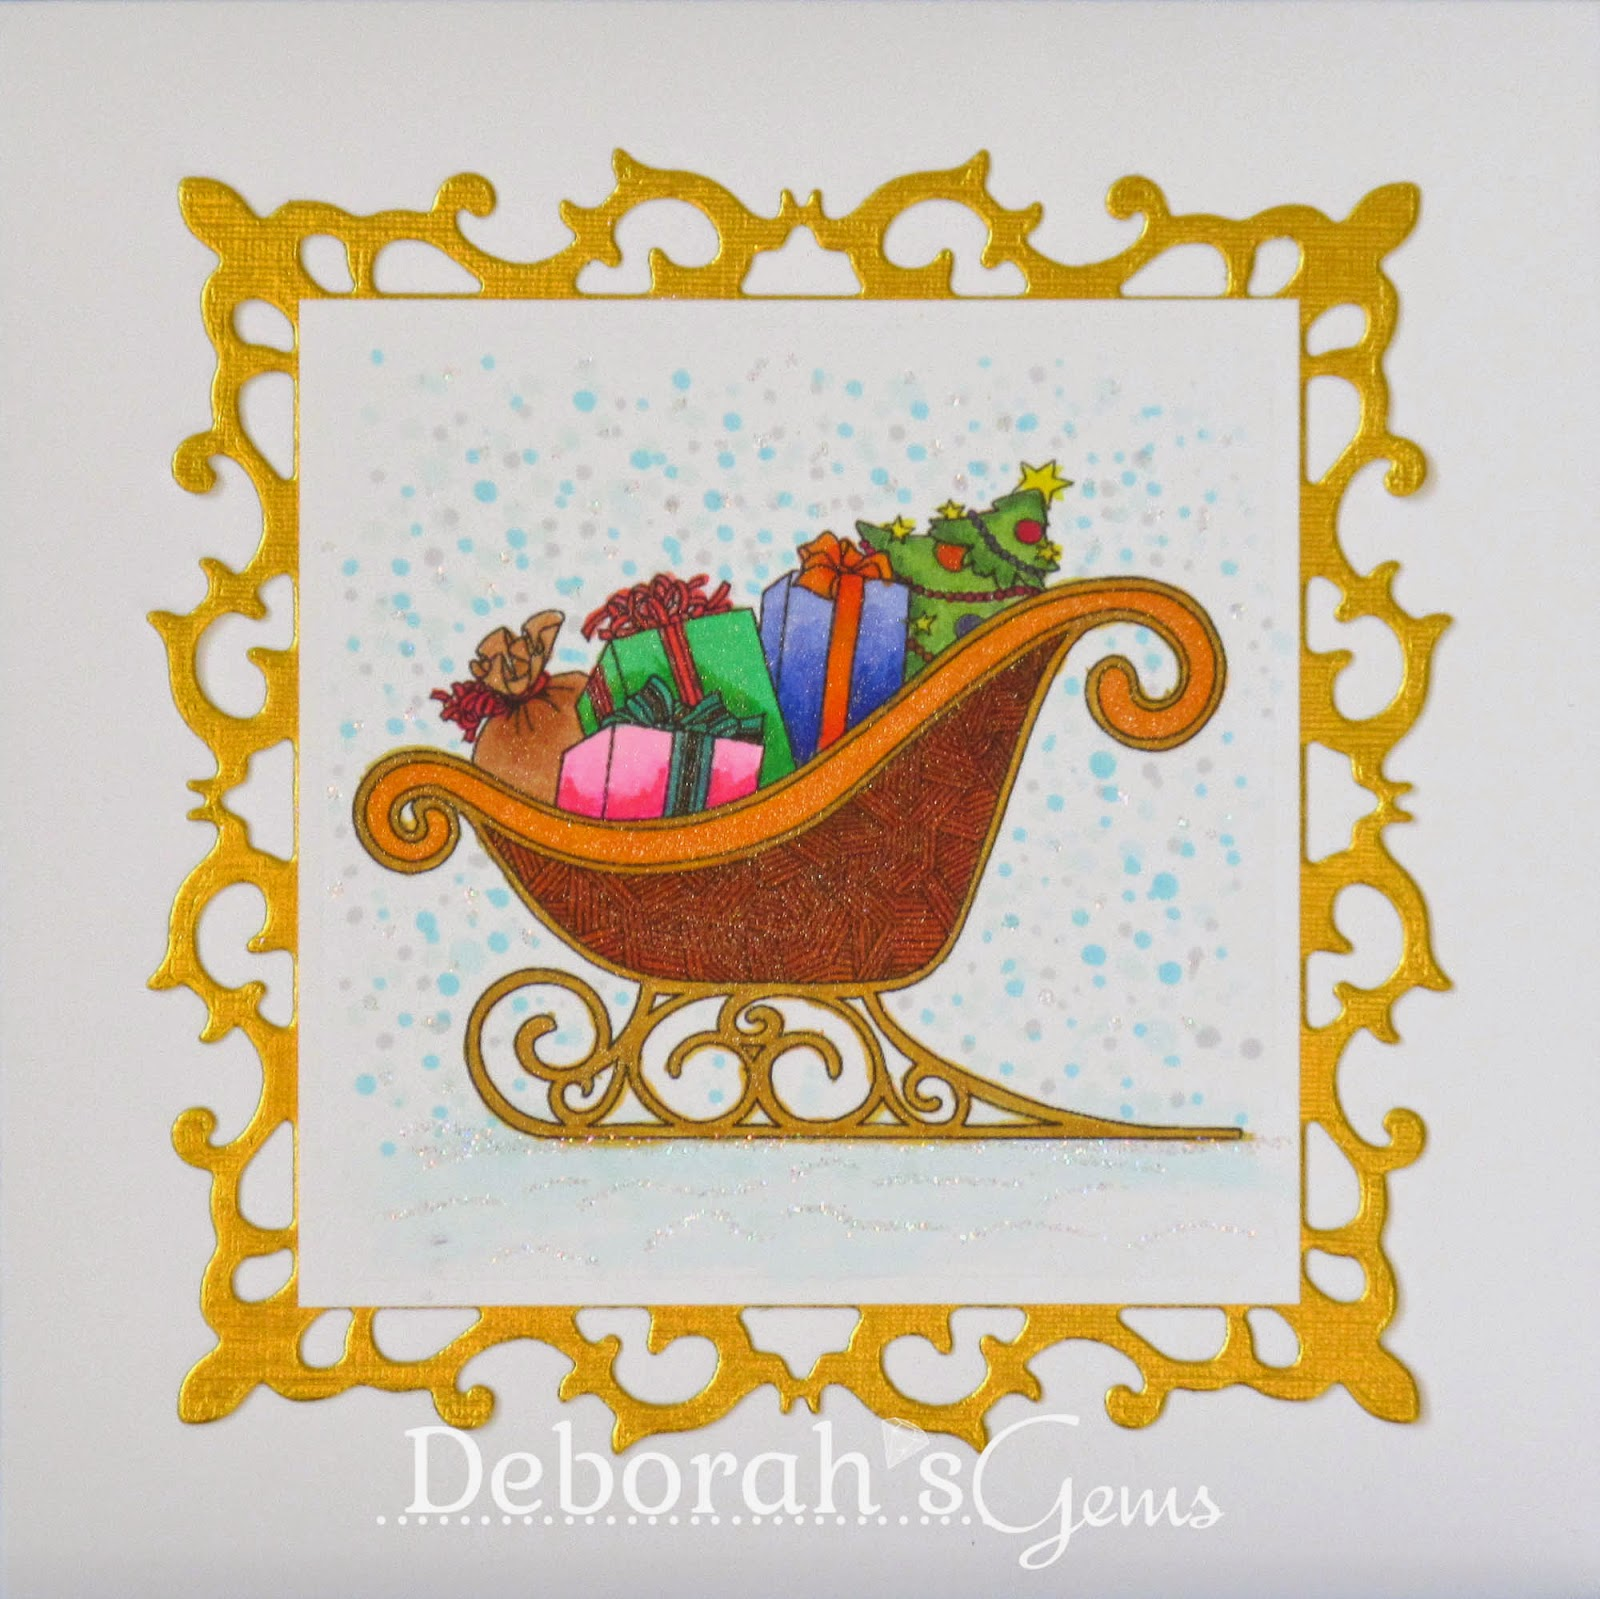 Sleigh Presents - photo by Deborah Frings - Deborah's Gems